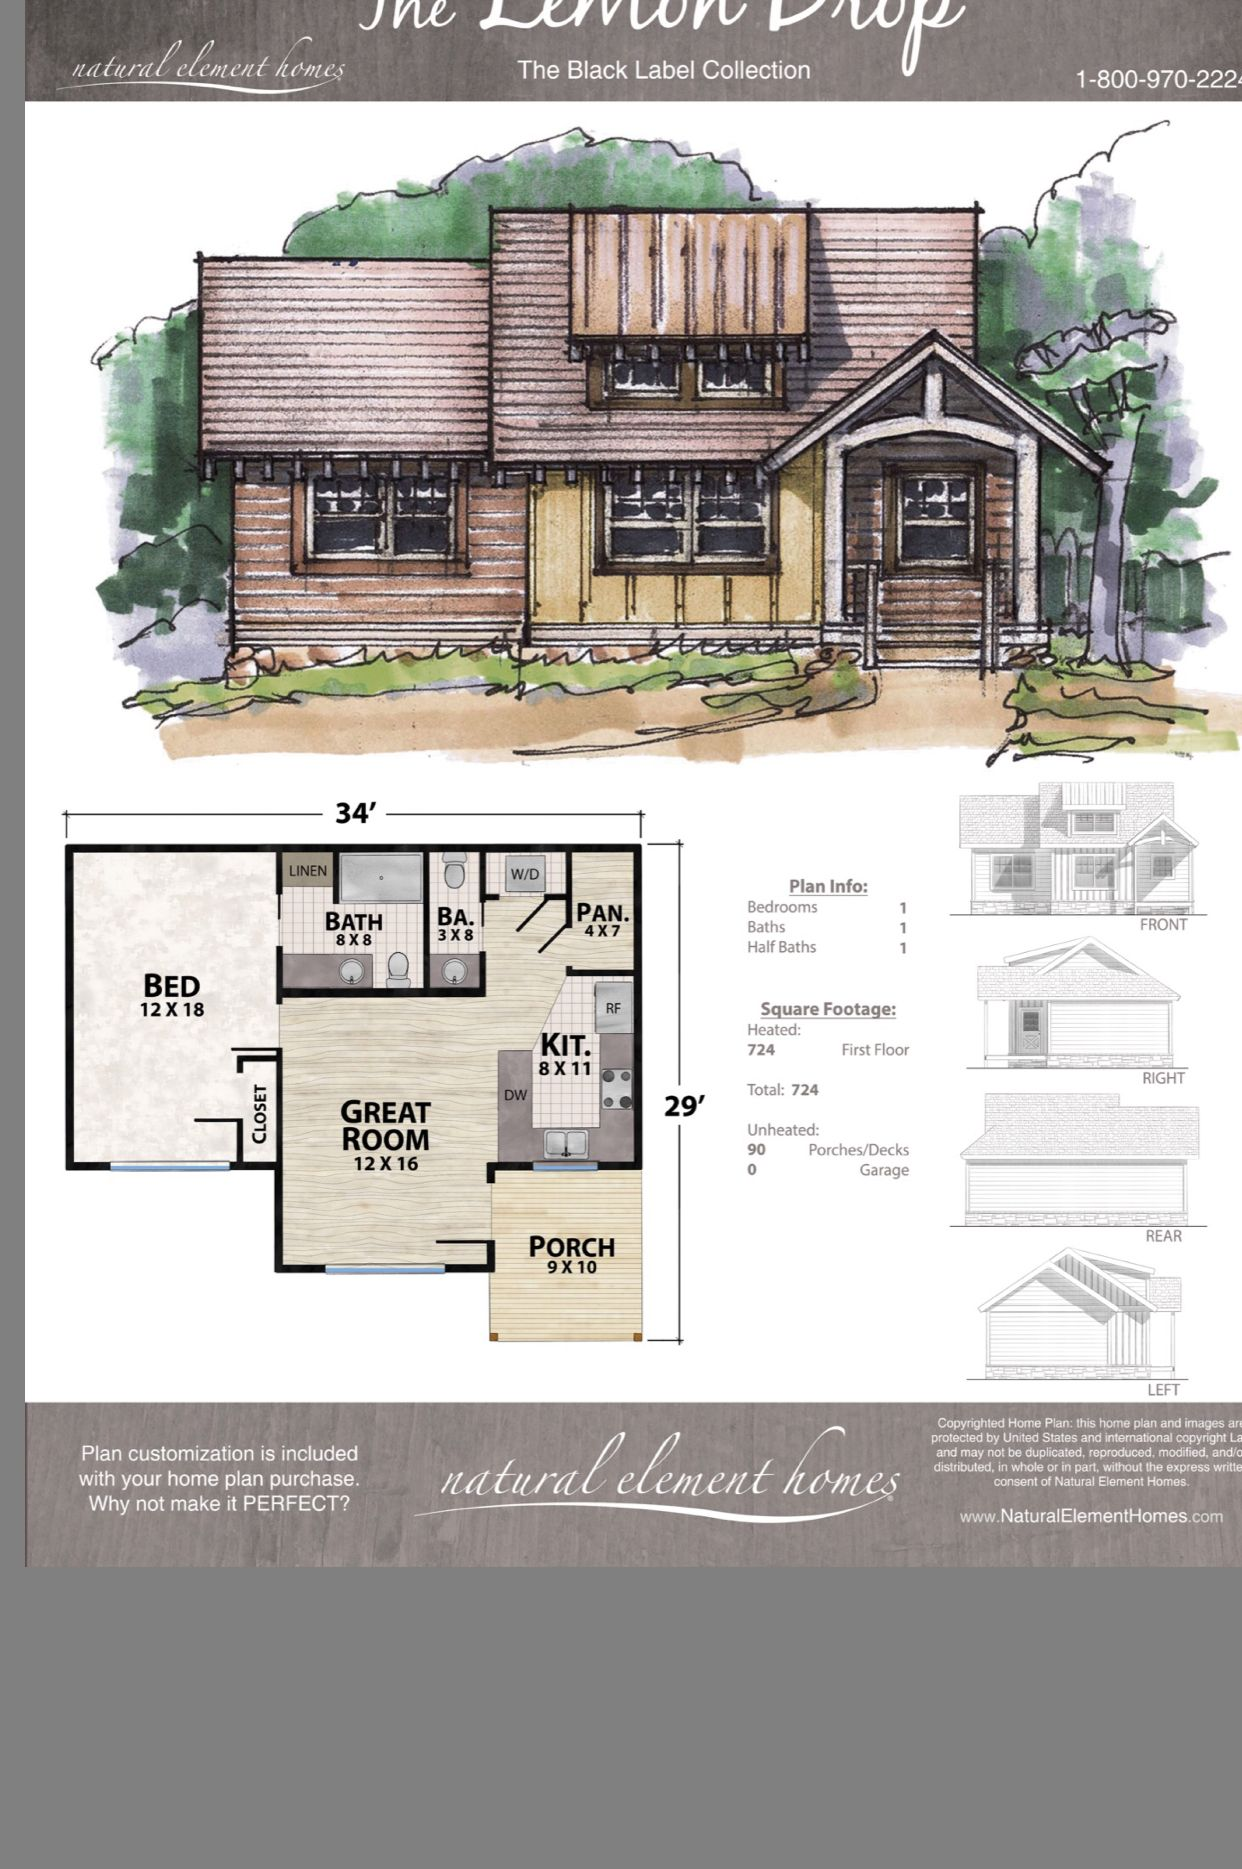 Pin By Cherie King On House Plans Small Country Homes House Plans Small House Plans